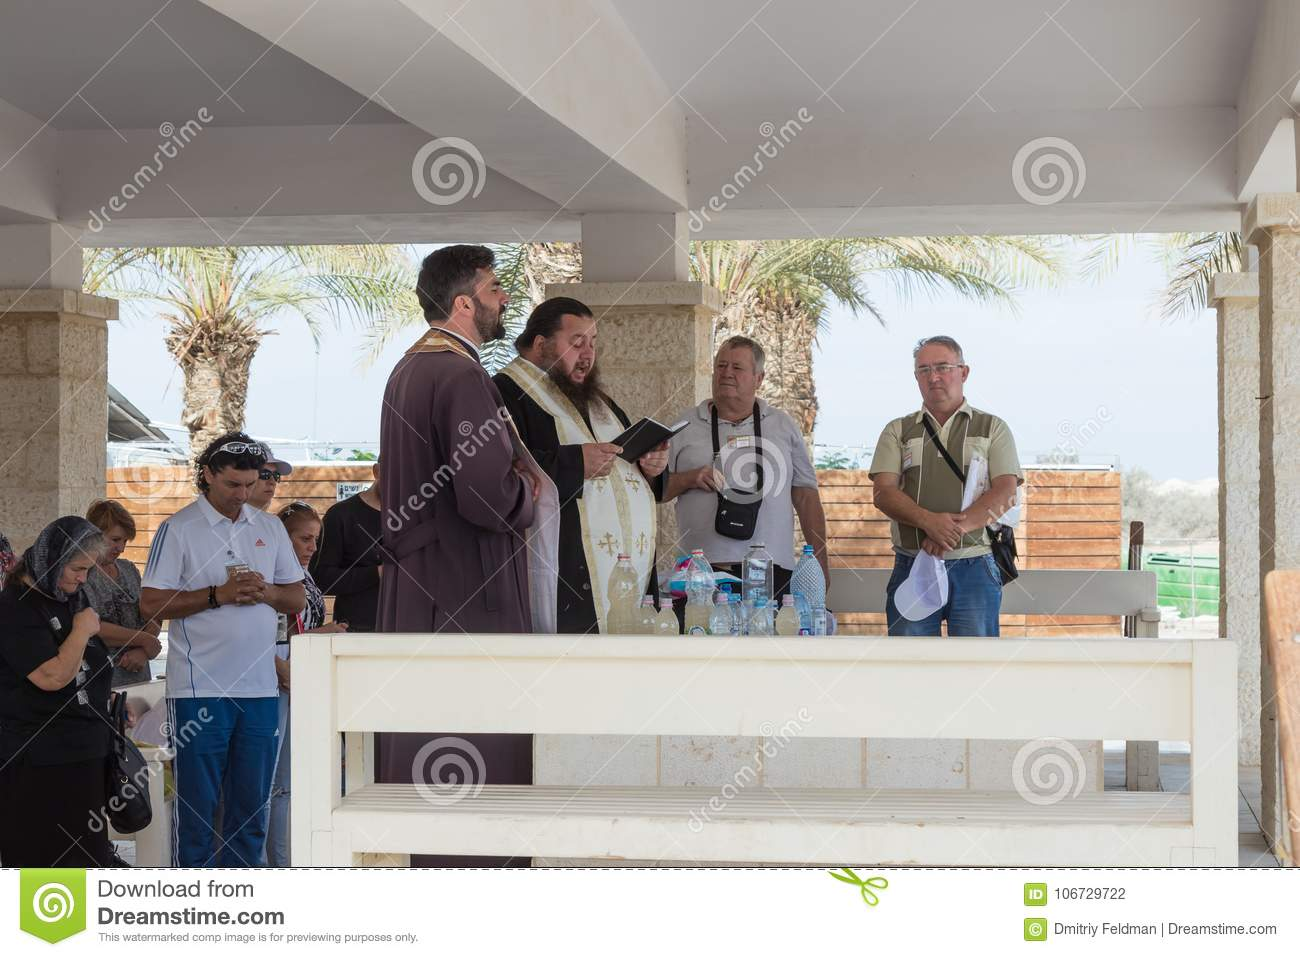 Christian priests pray in the presence of believers on the tourist site Qasr el Yahud in Israel